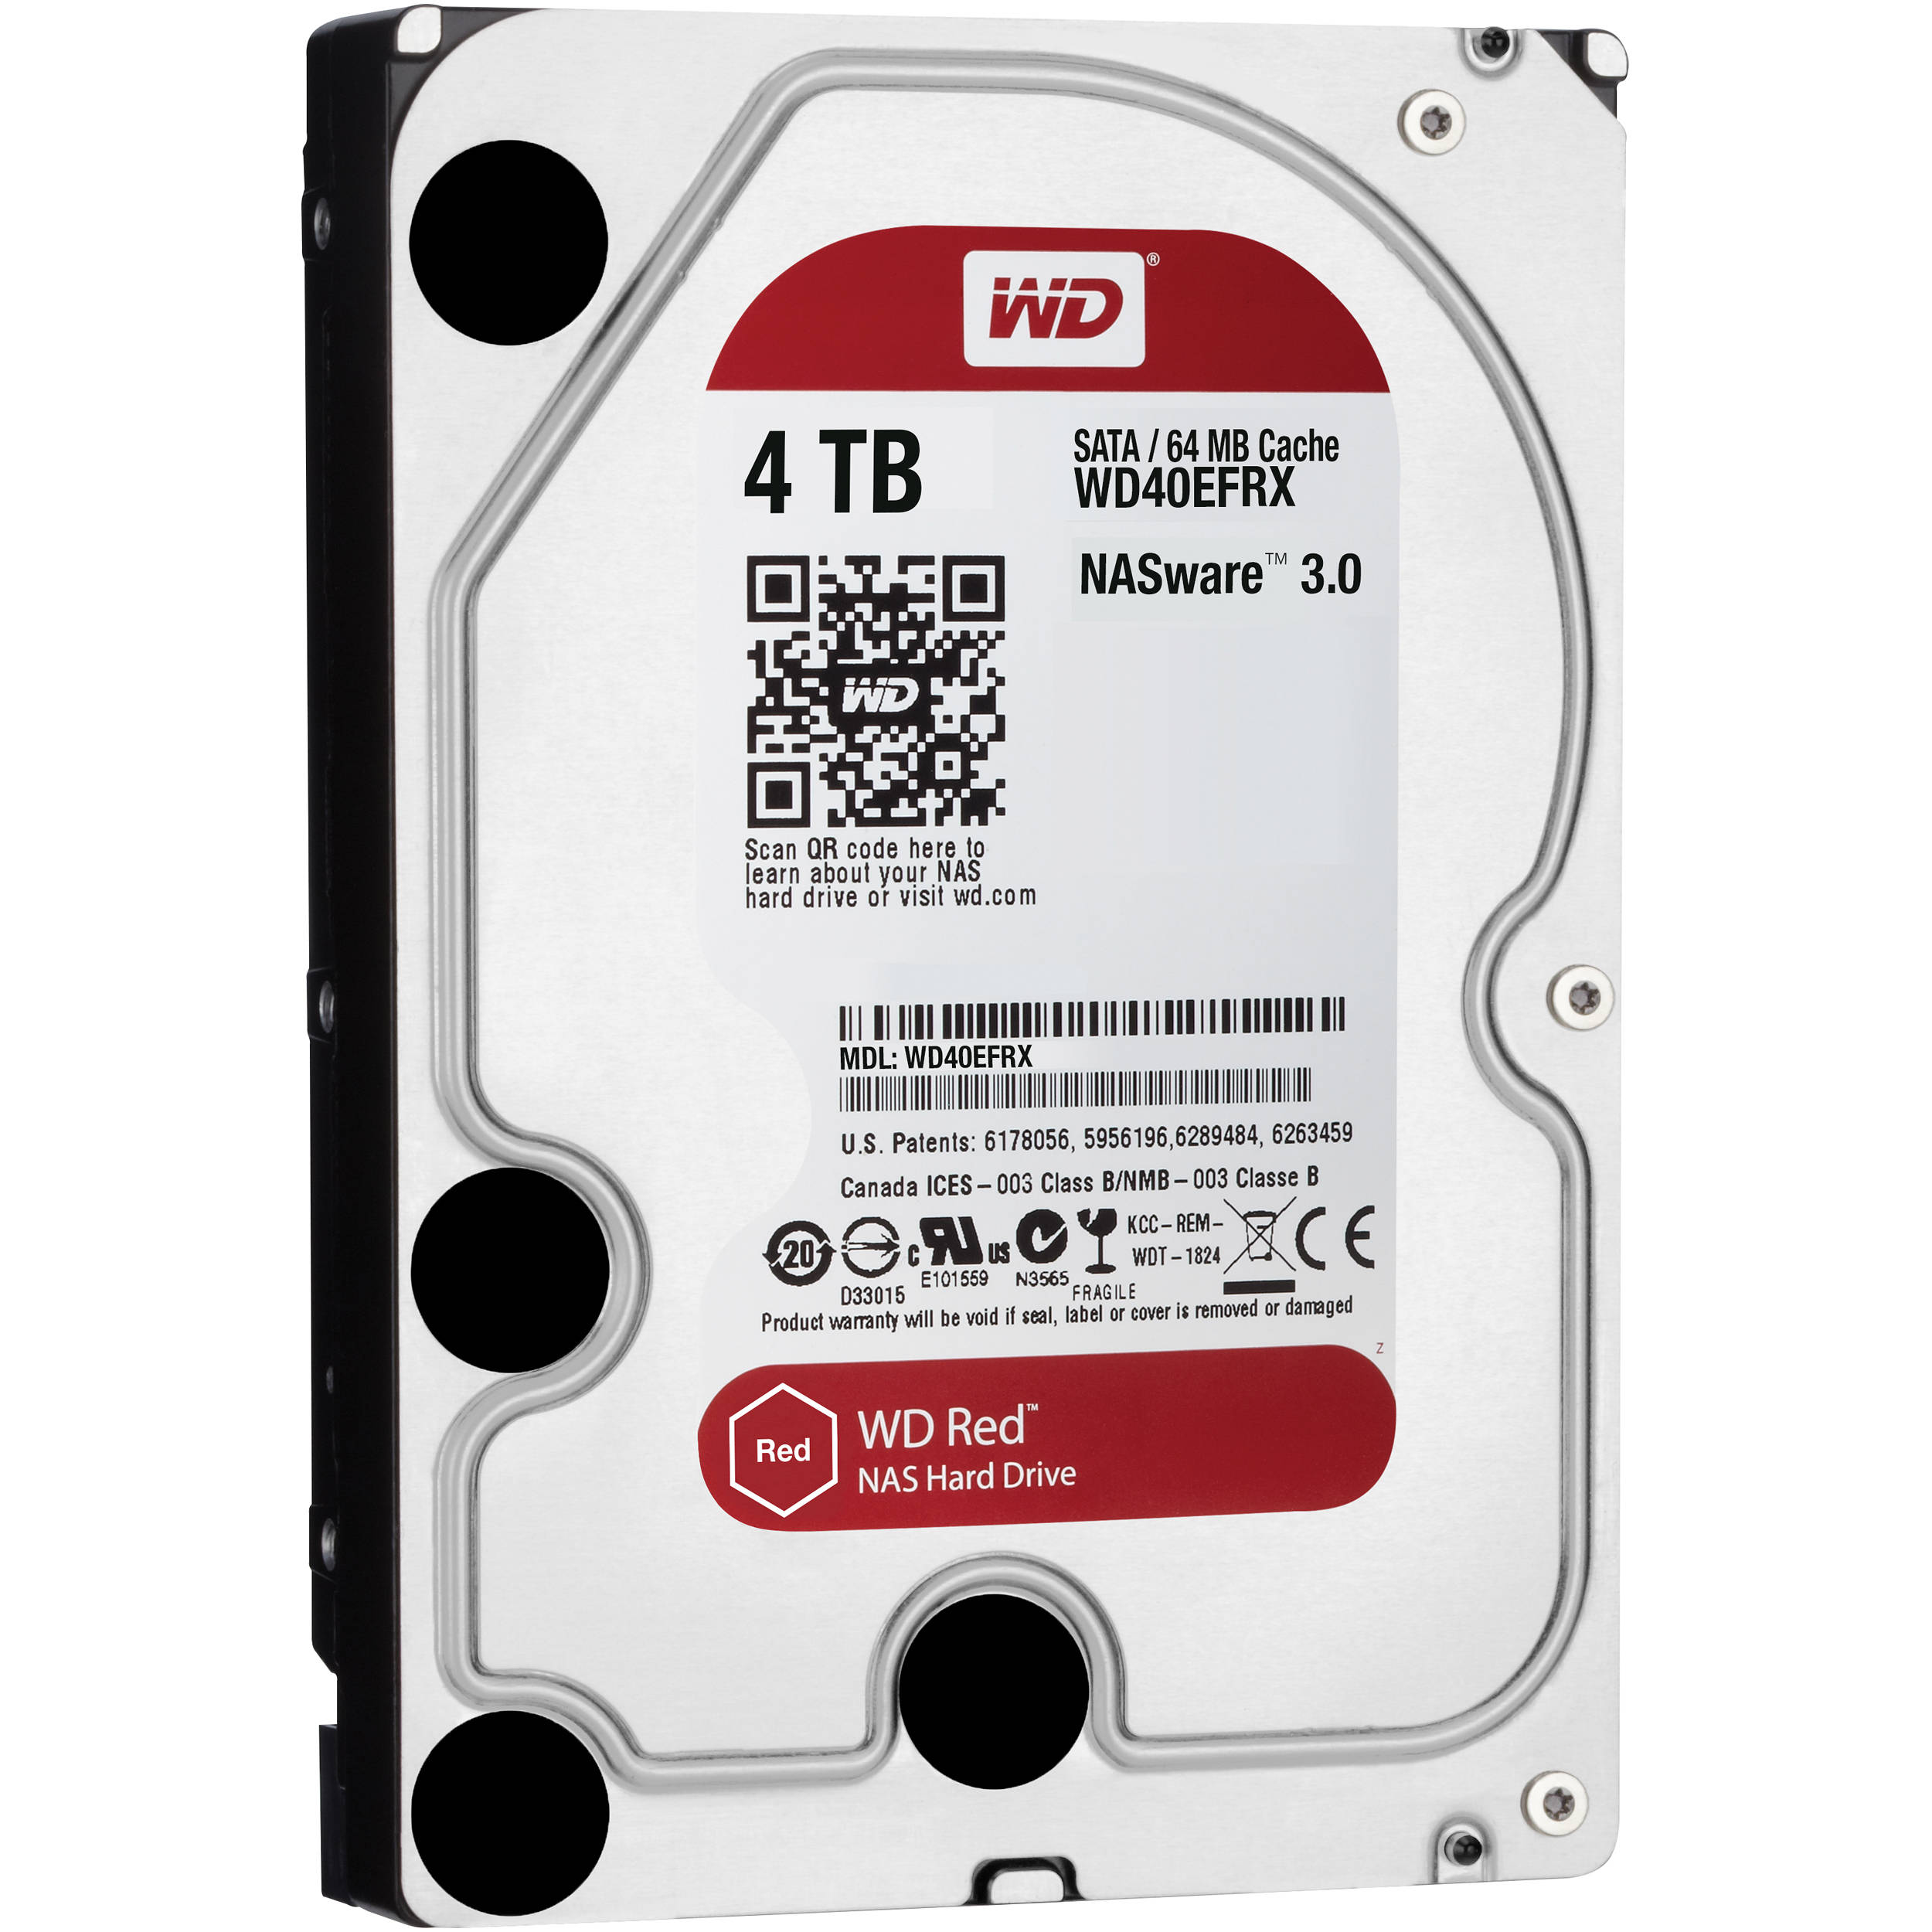 Ổ cứng gắn trong DESKTOP WD Red 4TB, 3.5, SATA 3, 256MB Cache, 5400RPM, 3Y WTY_WD40EFAX